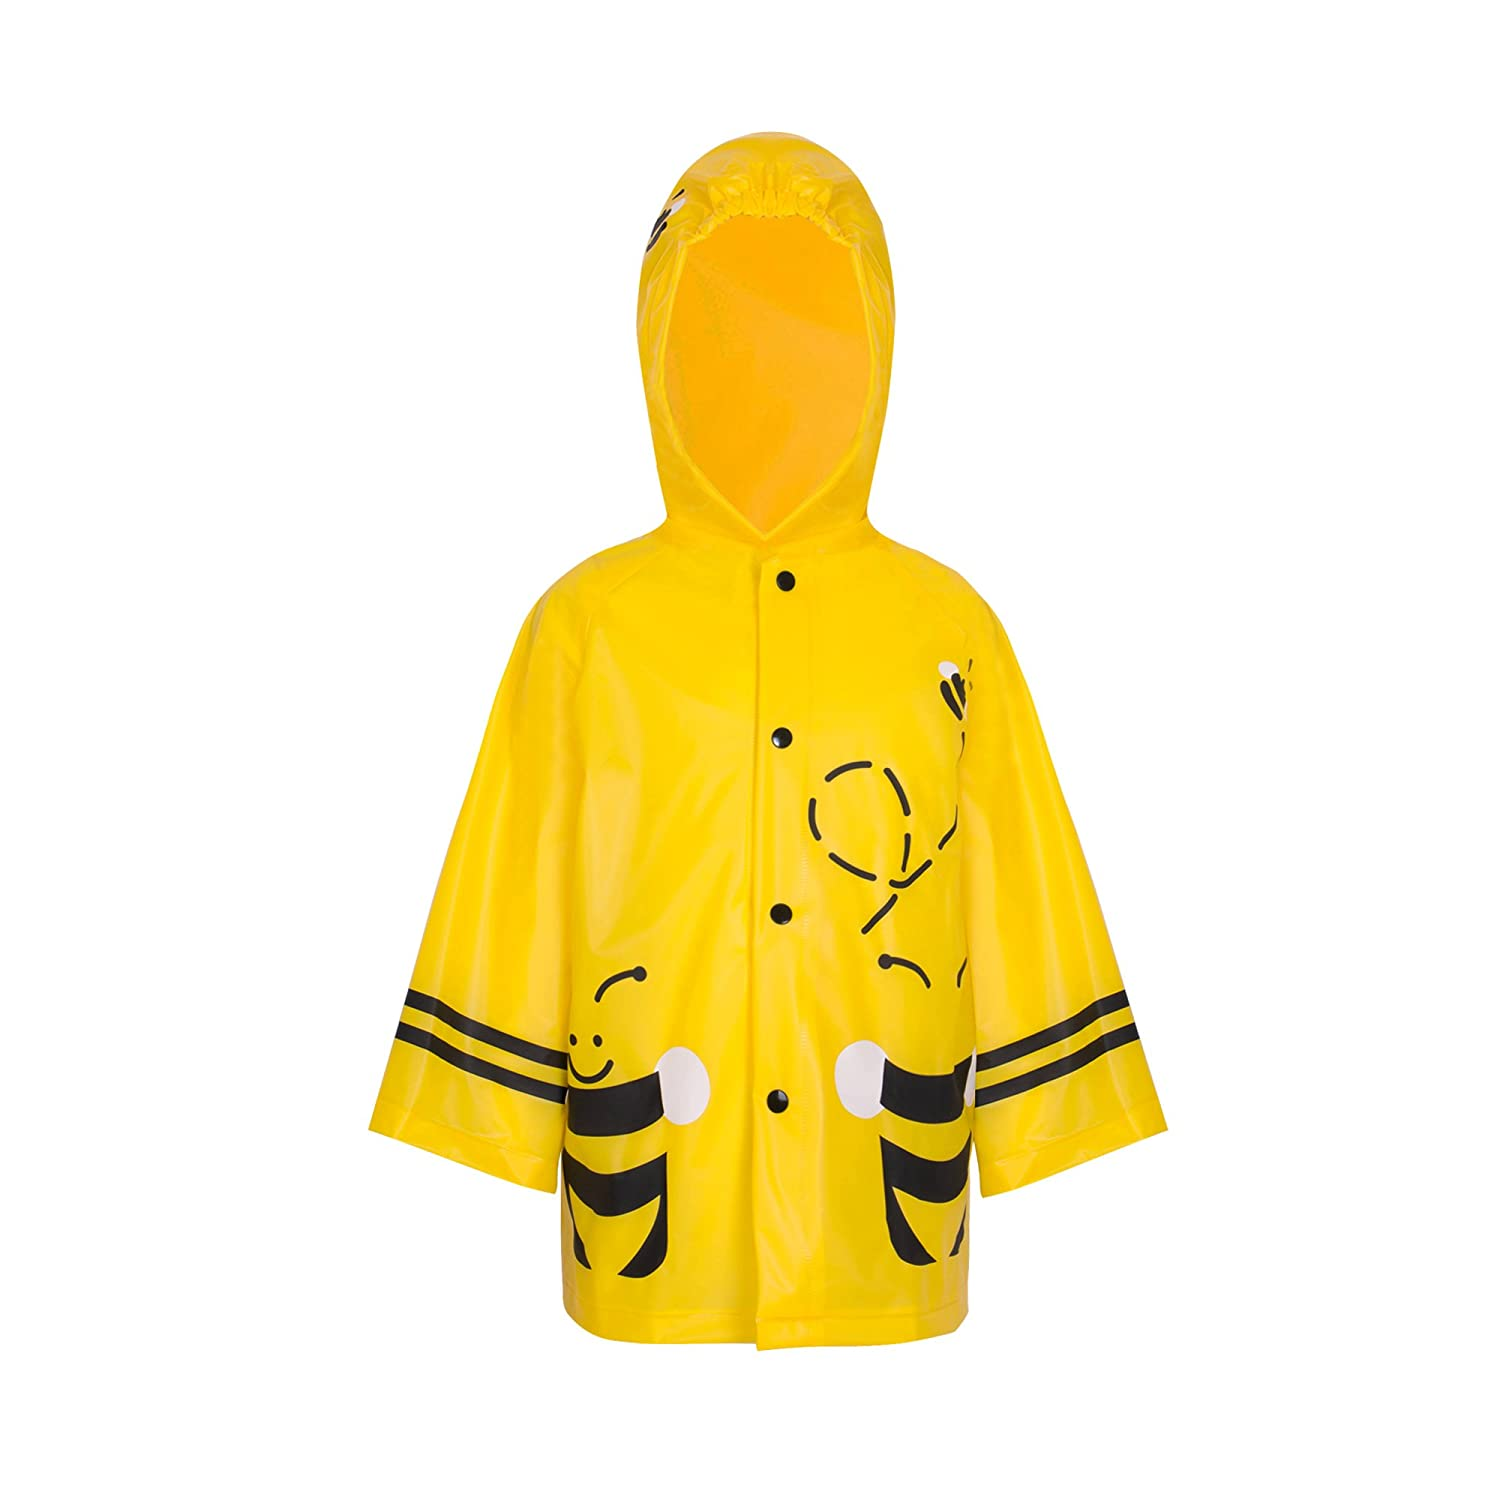 ZDHGLOBAL Children Rain Jacket Portable Poncho and Kids Raincoat with Hoods and Sleeves 1